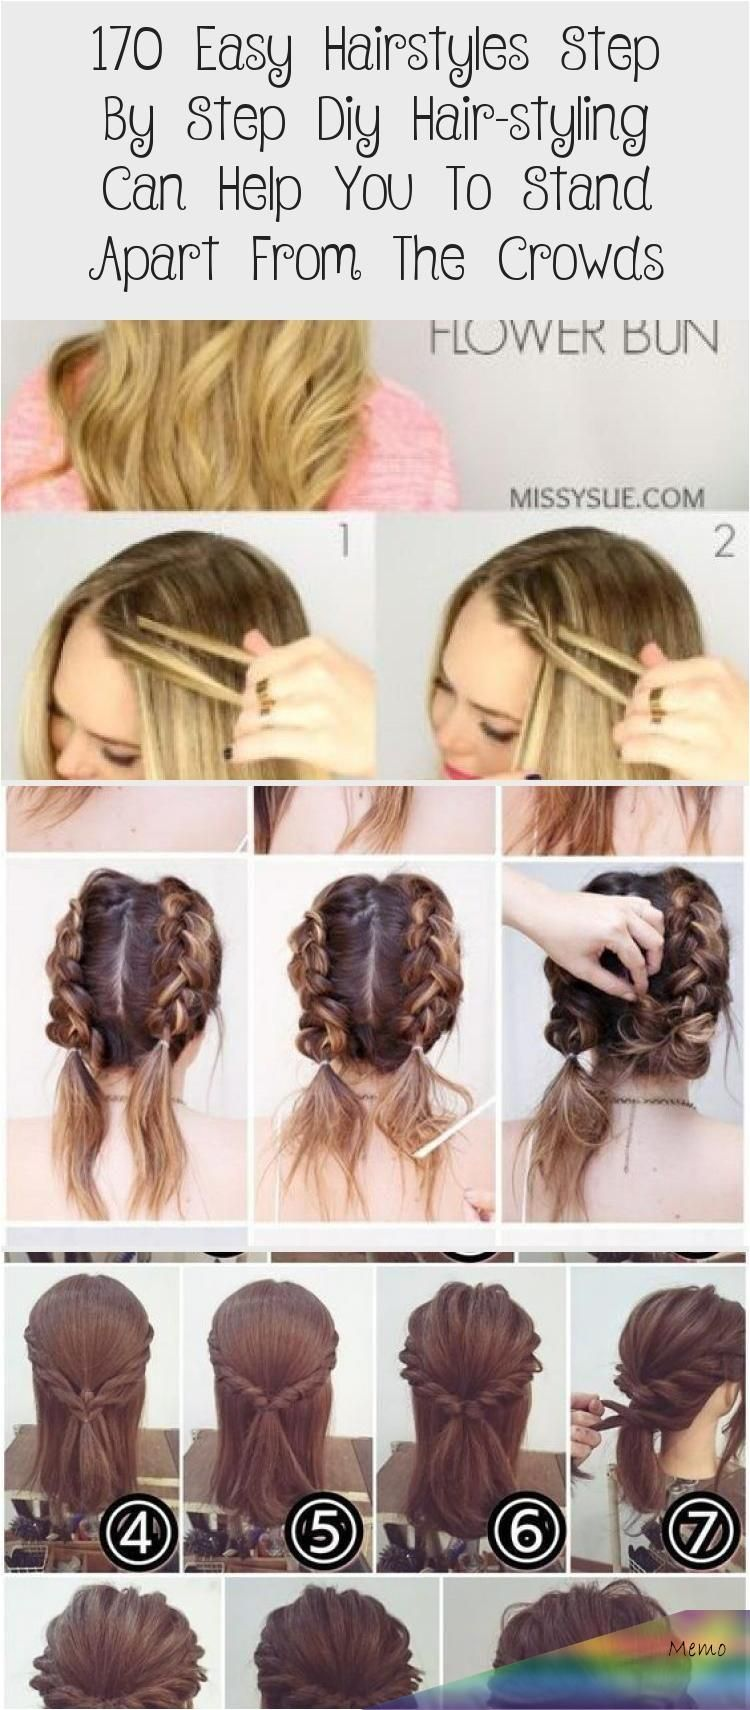 Apr 8 2020 170 Easy Hairstyles Step By Step Diy Hair Styling Can Help You To Stand Apart From The Crowds A Page 83 A My Beauty Note Blackhairtutorial V In 2020